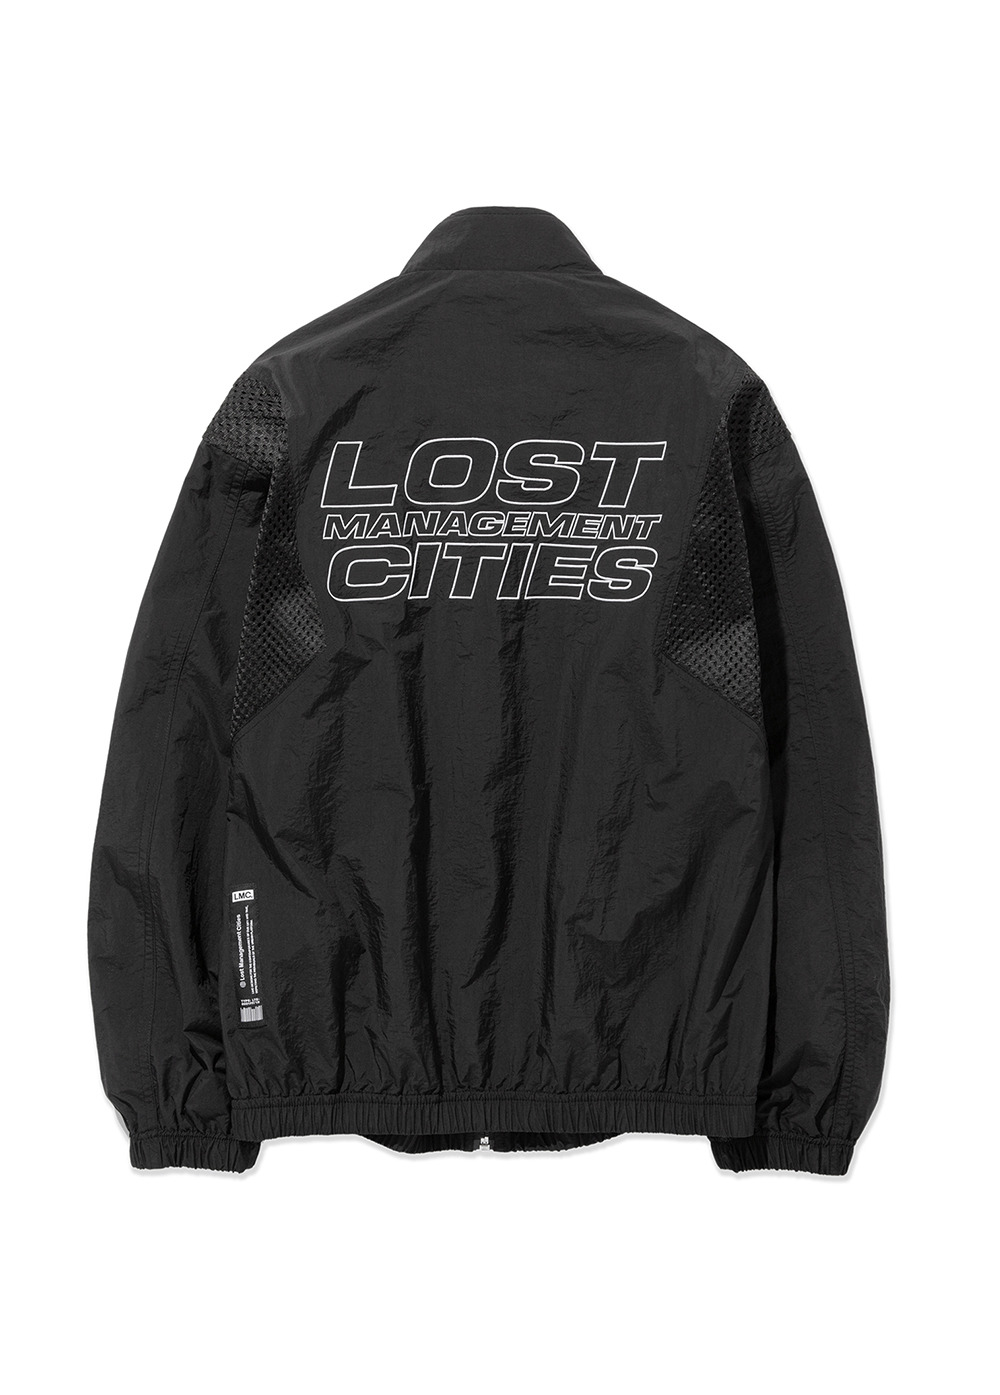 LMC MMWB TRACK SUIT JACKET black